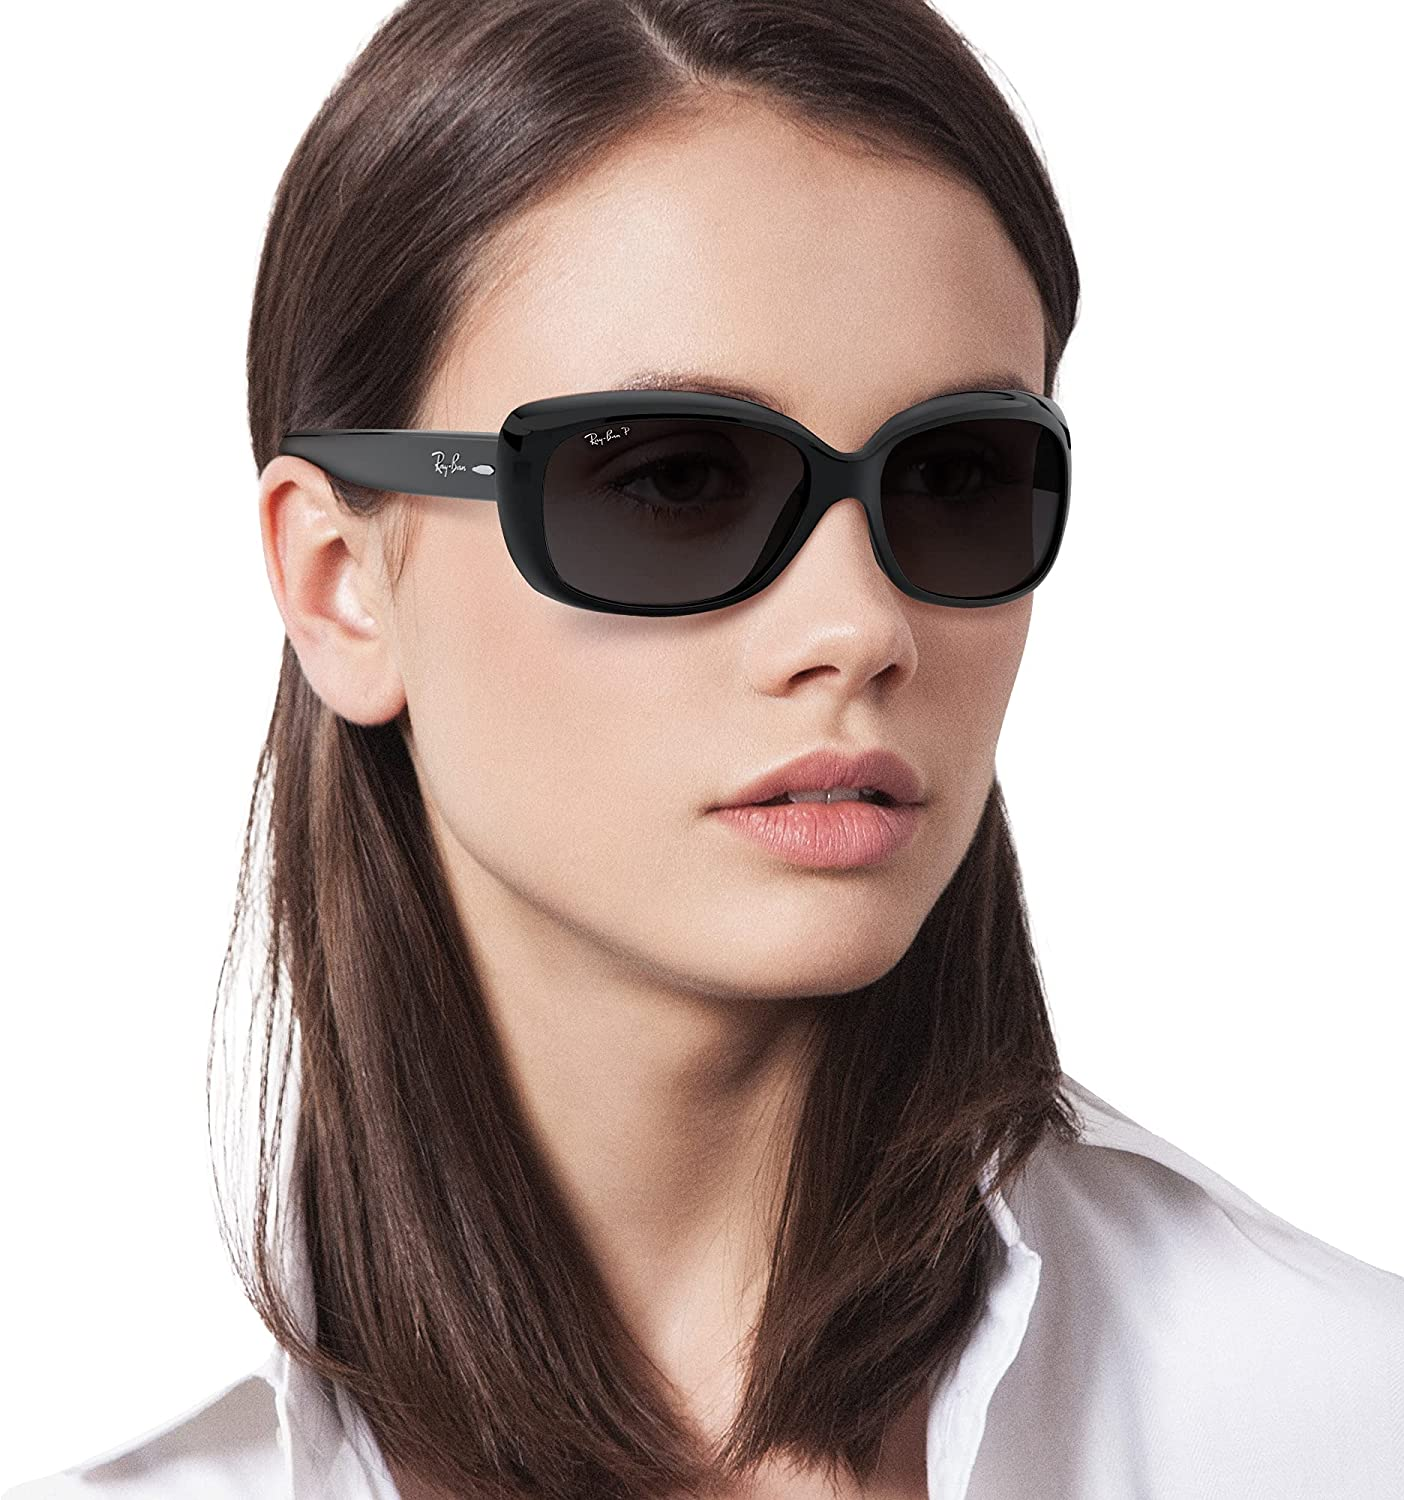 Ray Ban Women's RB20 Jackie Ohh Sunglasses